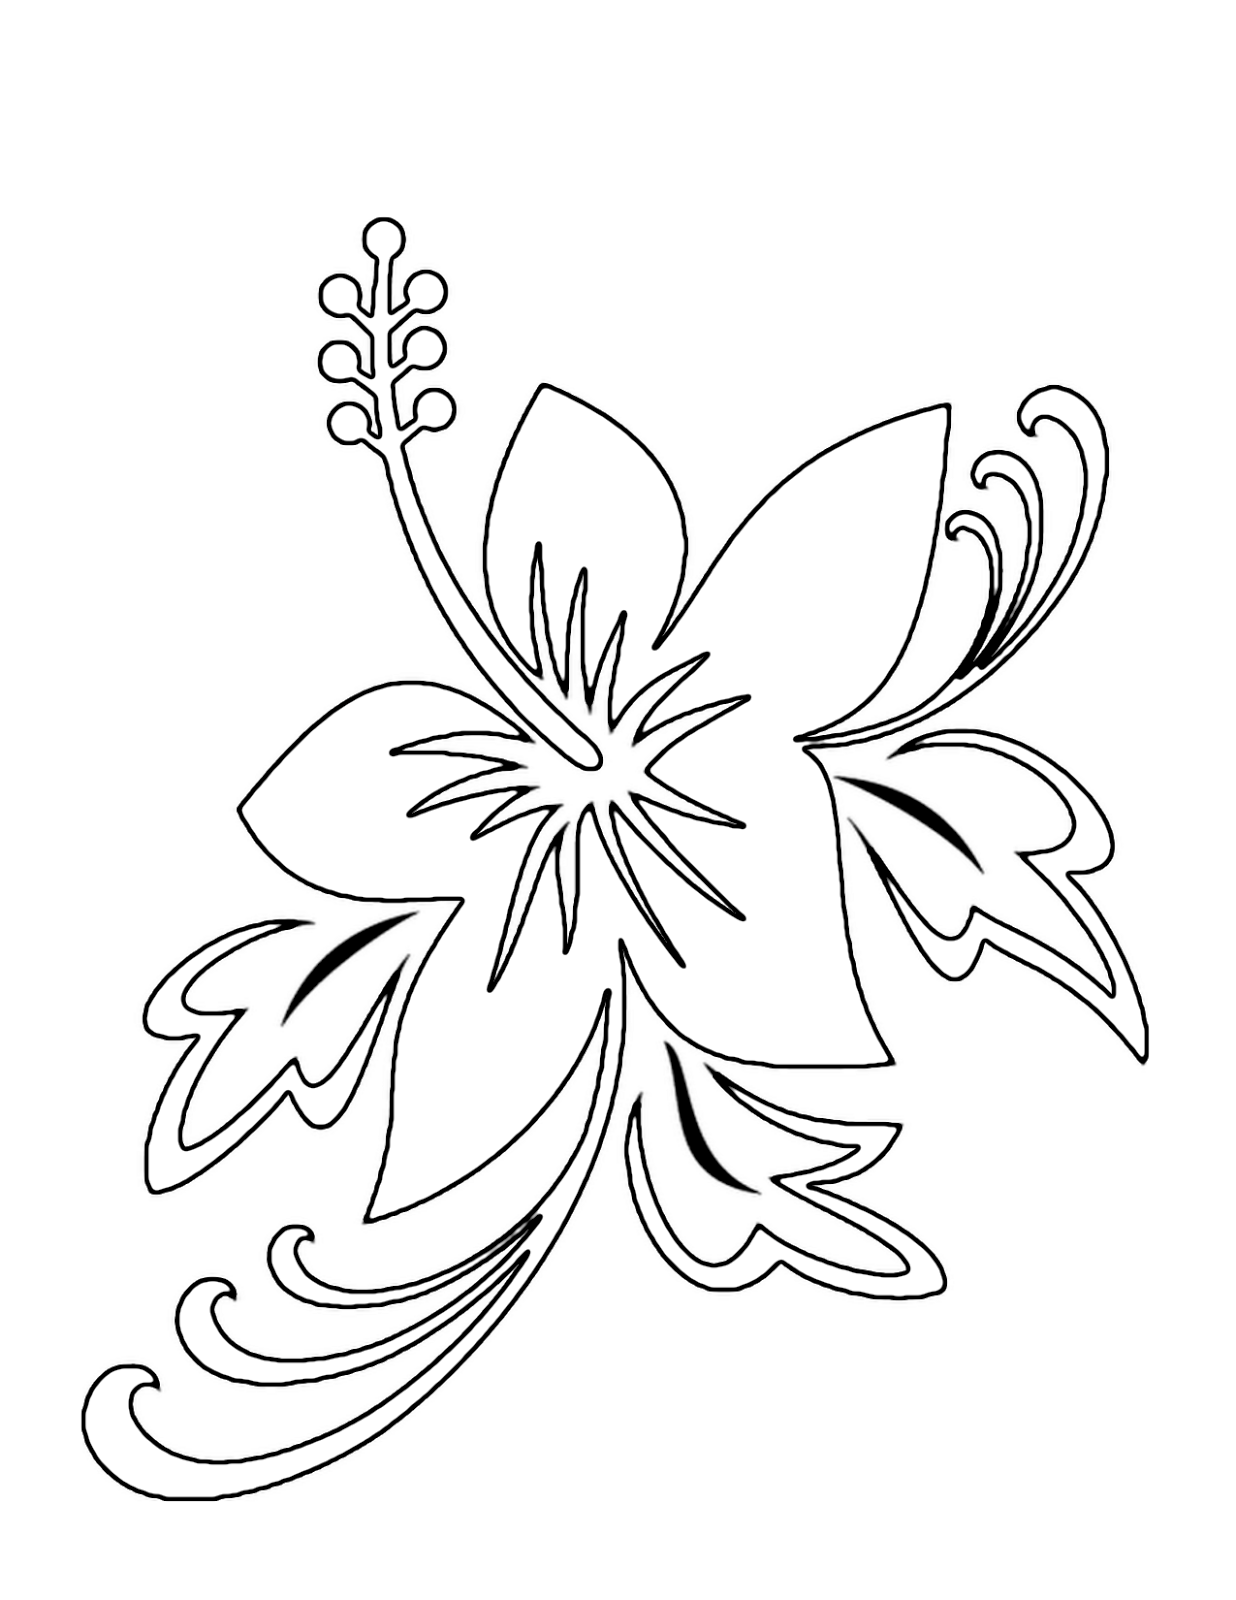 Hard Printable Coloring Pages For Adults AZ Coloring Pages - free printable coloring pages of flowers for adults